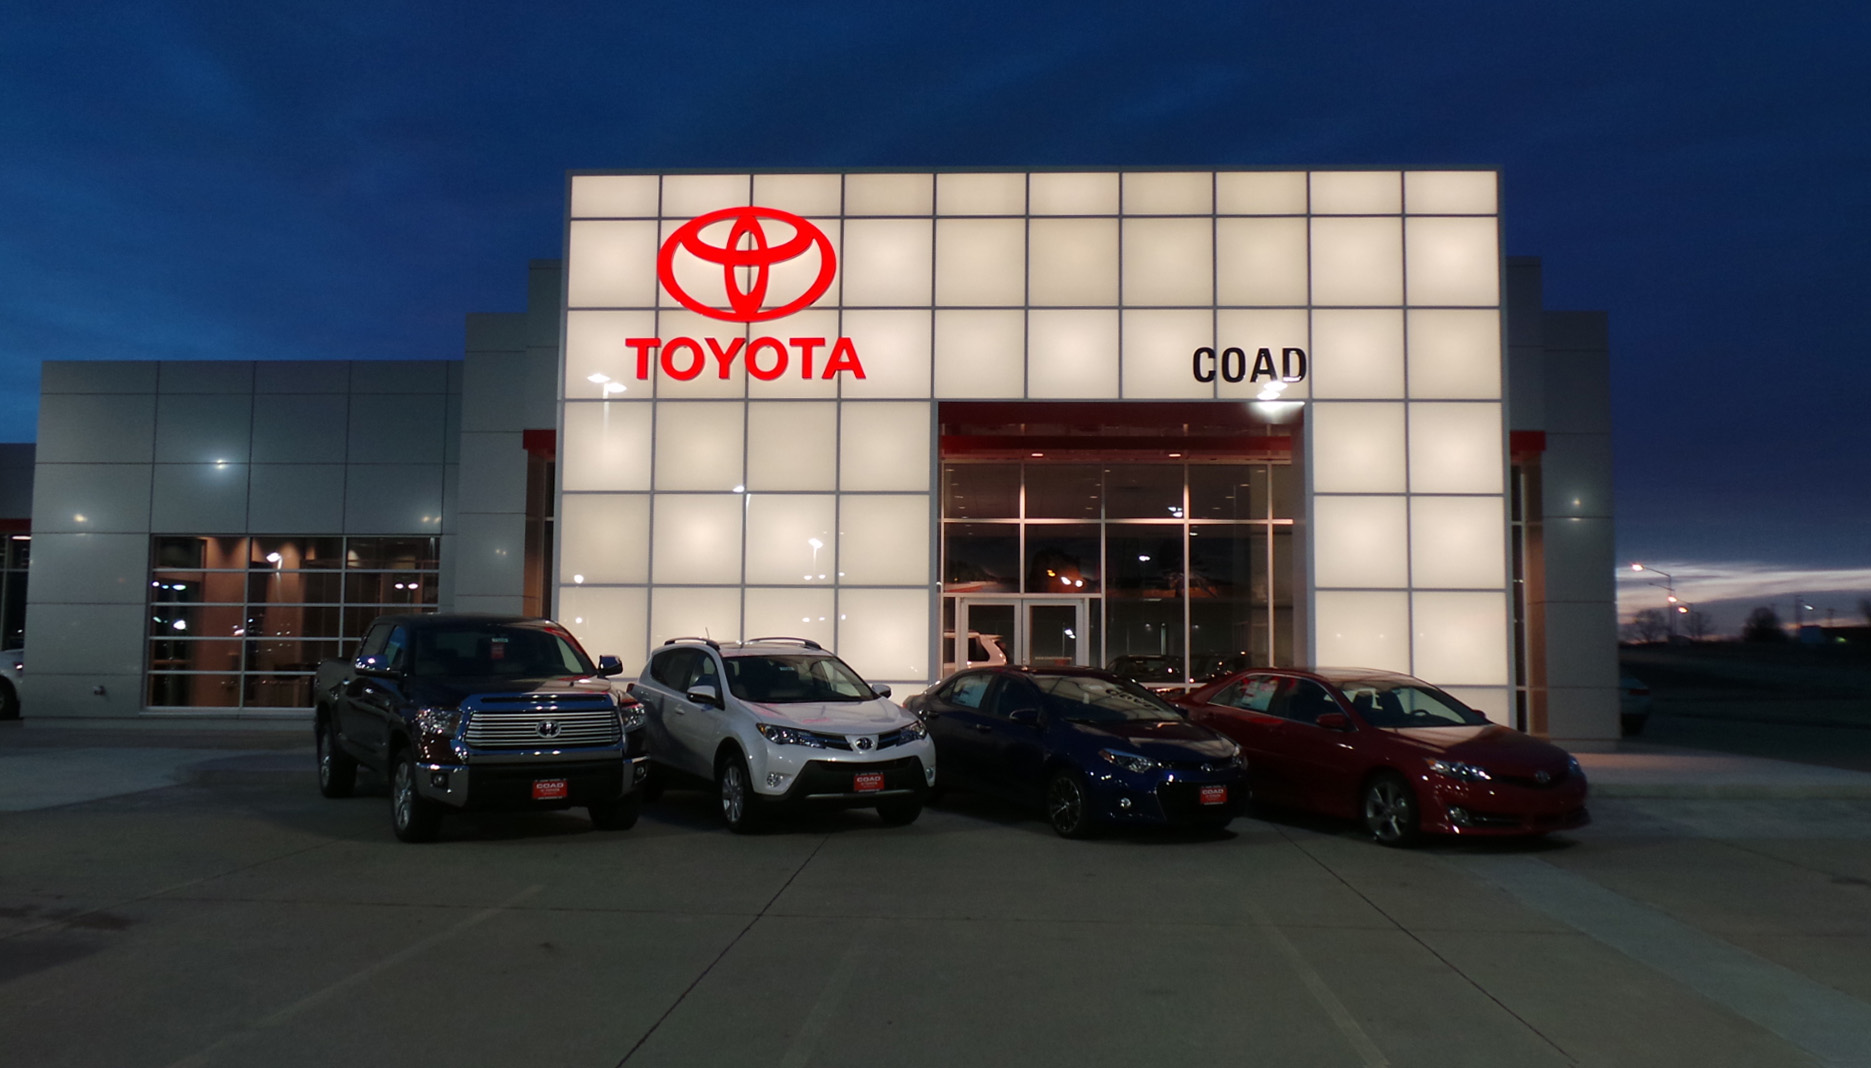 Marvelous About Our Toyota Dealership In Cape Girardeau, MO Serving Jackson